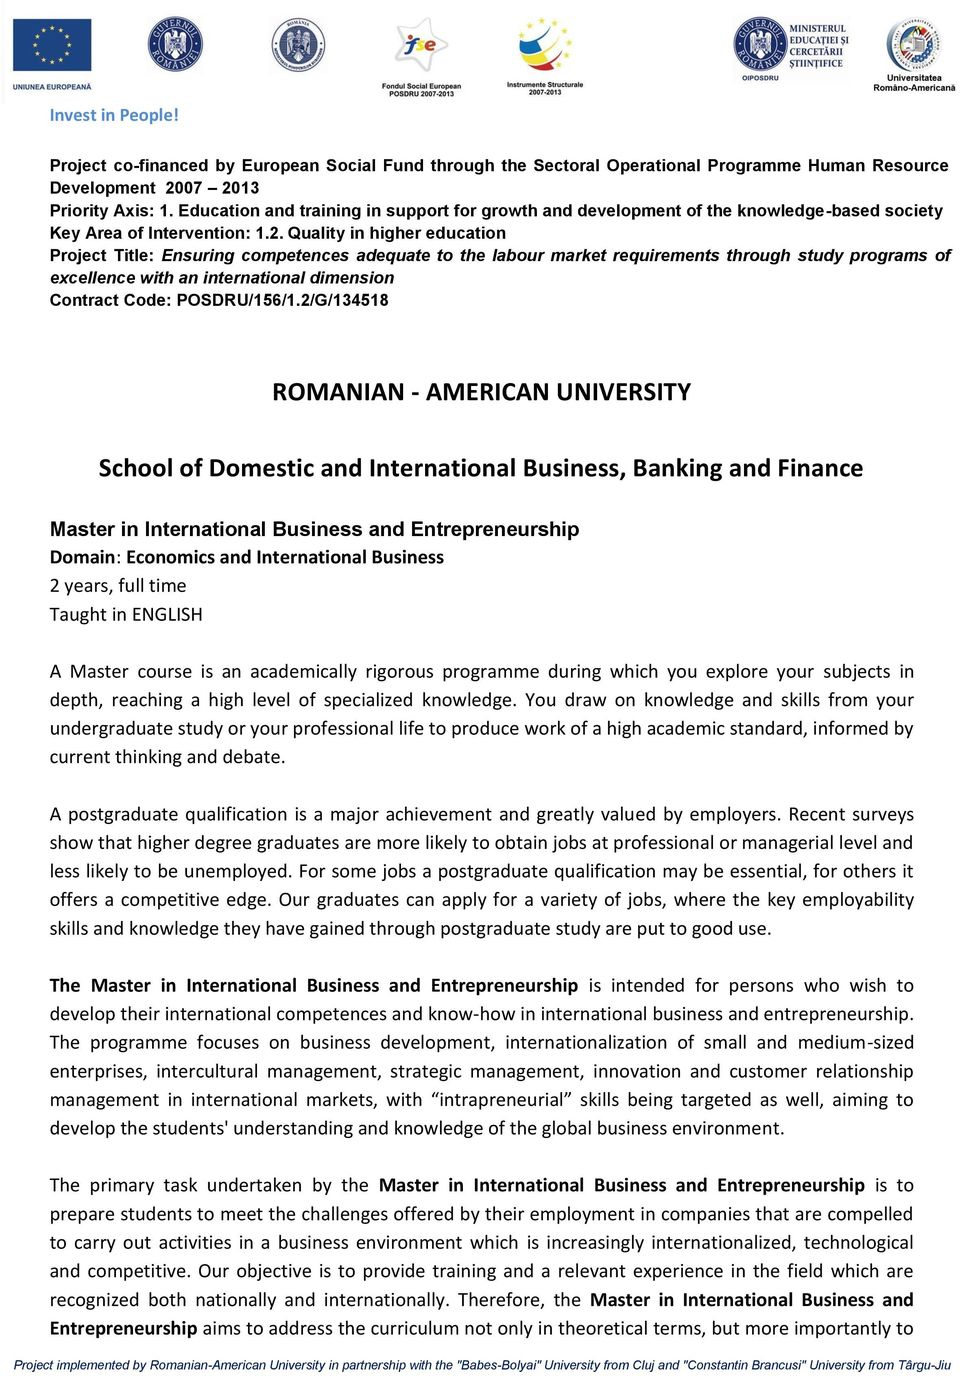 Quality in higher education Project Title: Ensuring competences adequate to the labour market requirements through study programs of excellence with an international dimension Contract Code: